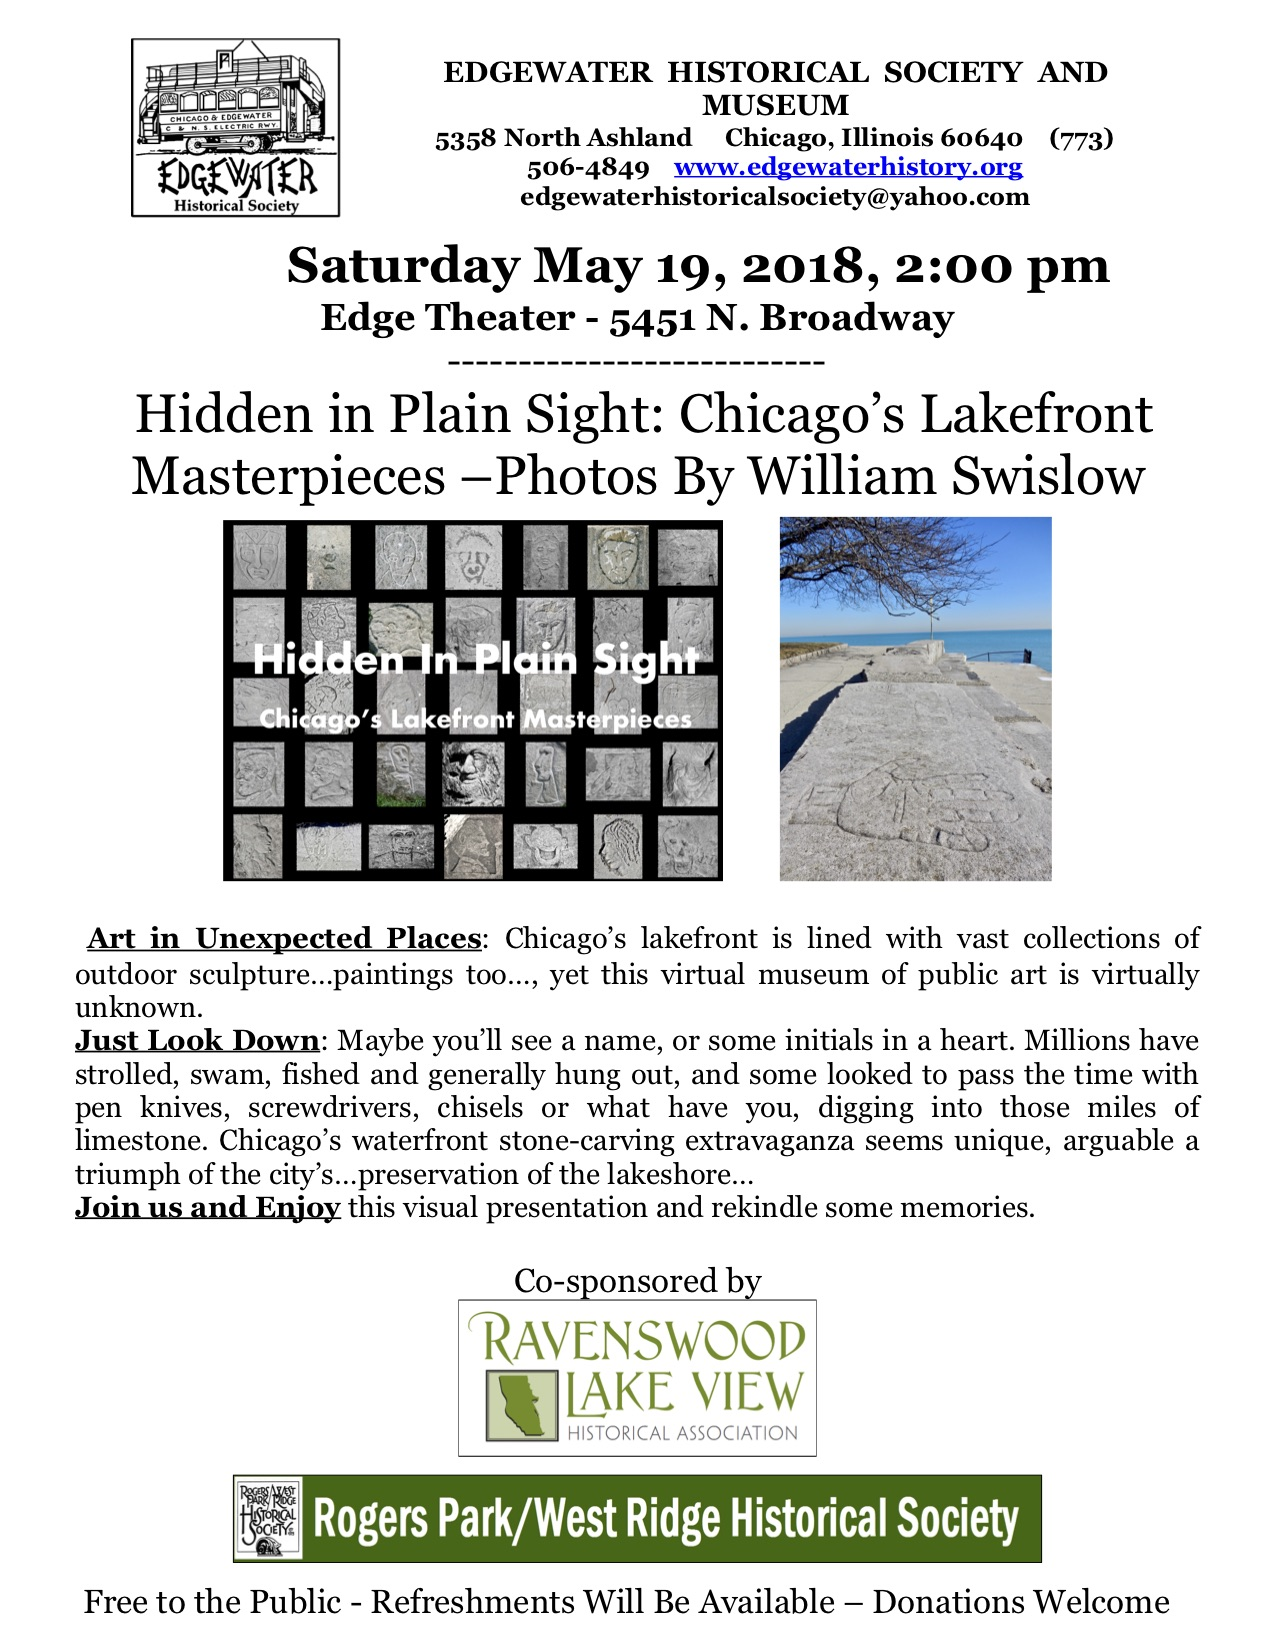 Hidden in Plain Sight: Chicago's Lakefront Masterpieces - Saturday May 19, 2pm - Edge Theater, 5451 N. Broadway